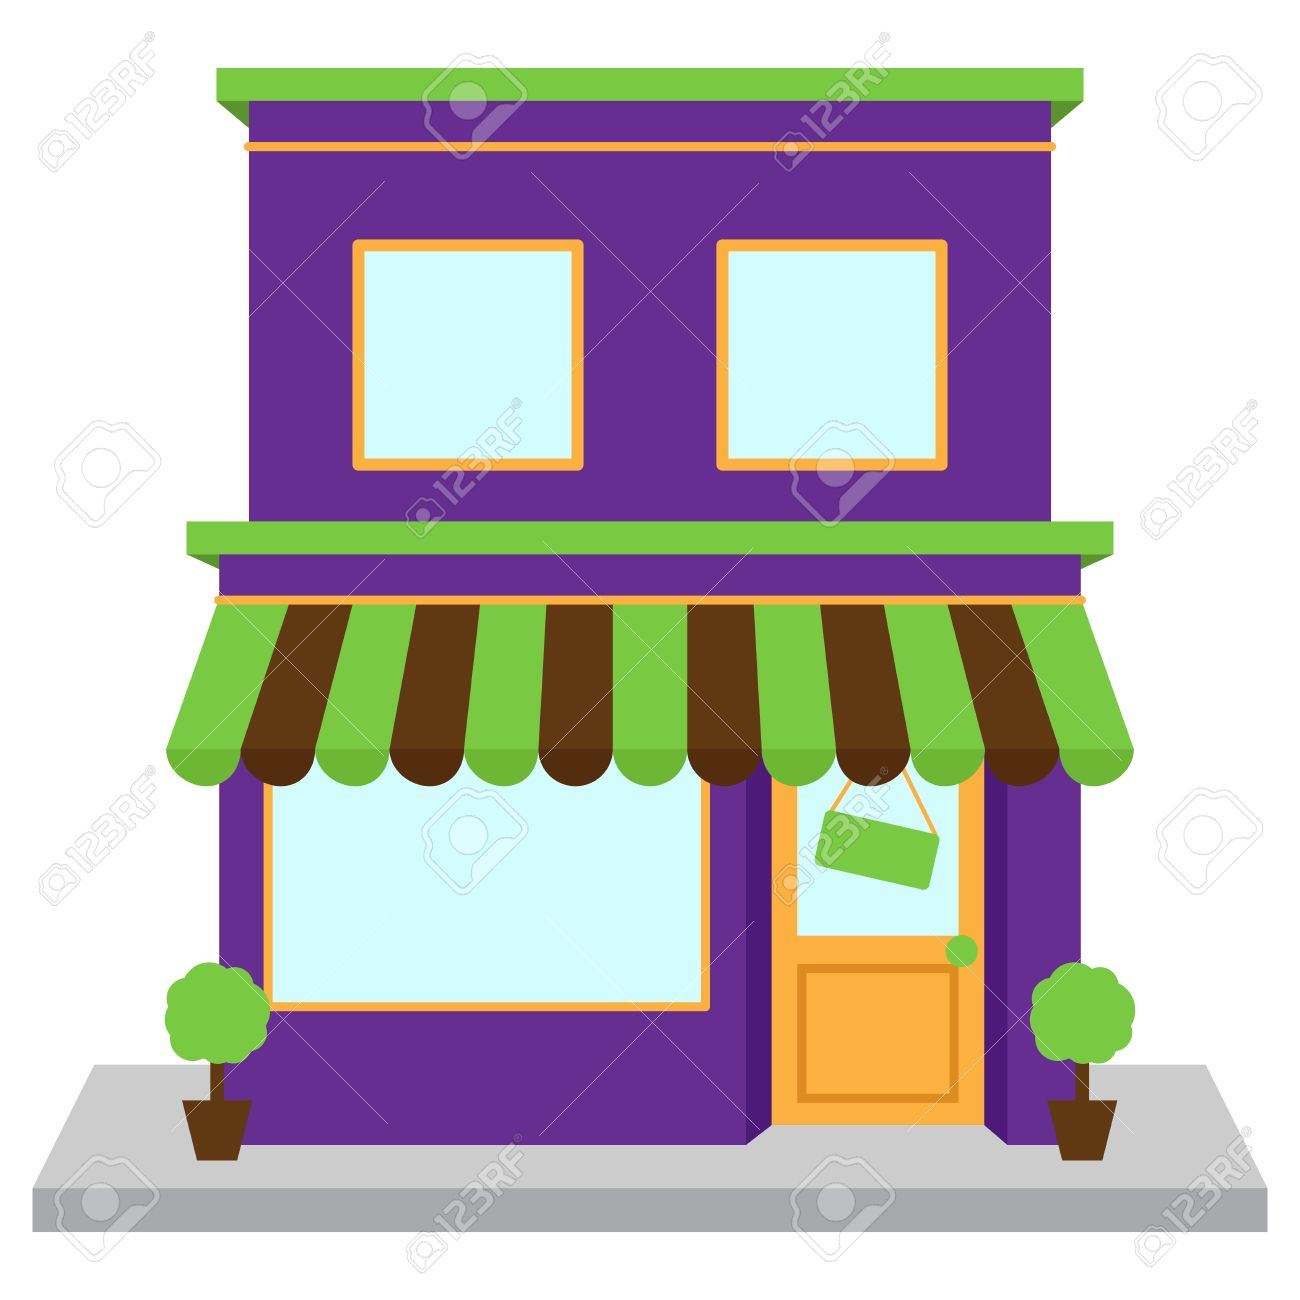 17,255 Sweet Shop Stock Vector Illustration And Royalty Free Sweet ...